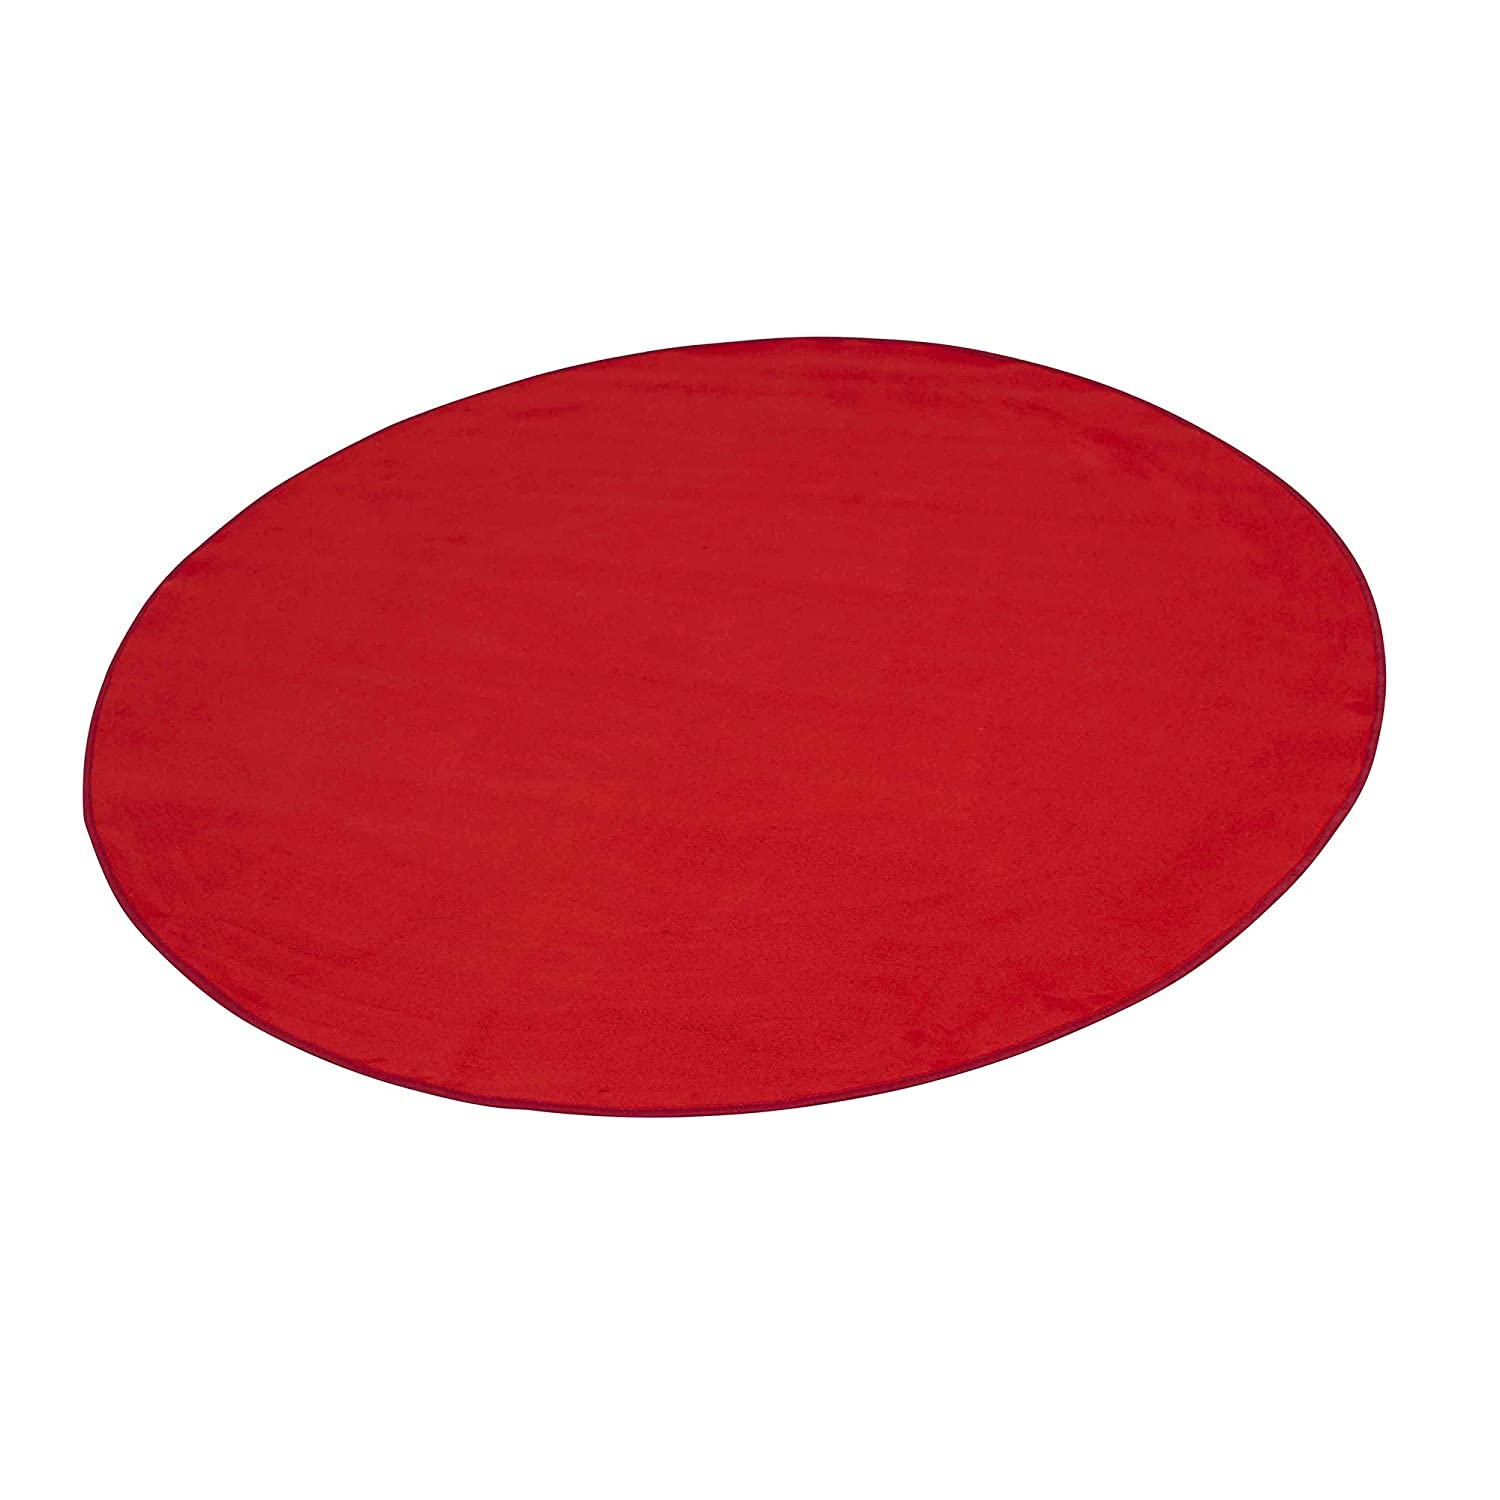 """Learning Carpets Red Solid Rug, 108"""" x 108"""" Round Kids Playroom Rug, Classroom Furniture Educational Carpet for Daycares/Preschools/Homes, Solid Red, Large Round (CPR 478)"""